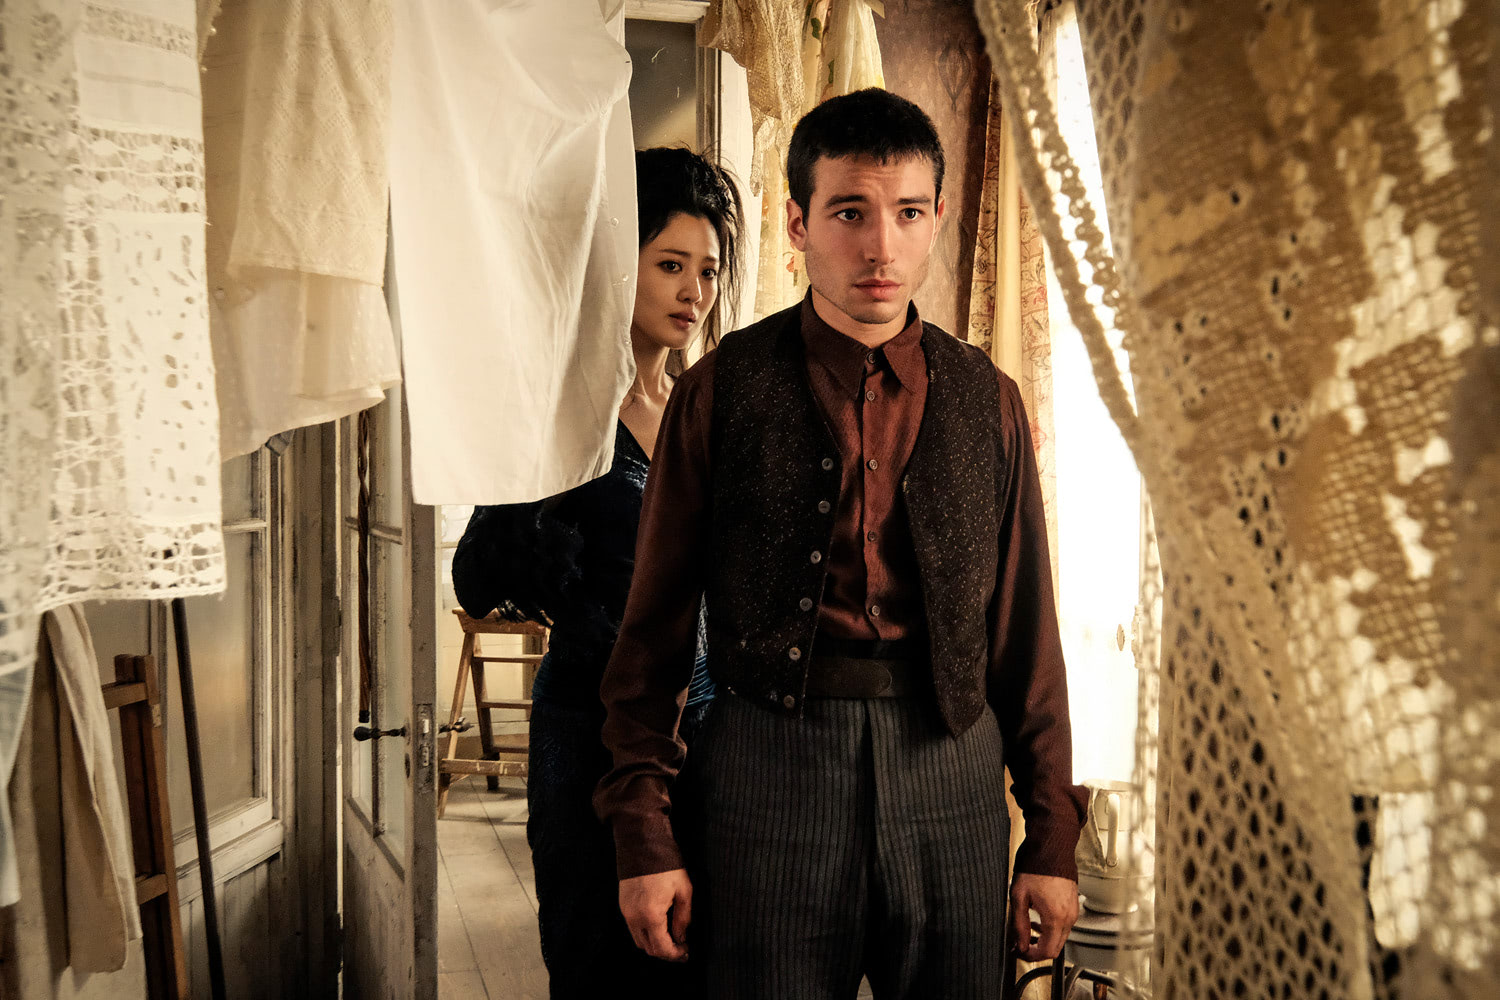 Credence and Nagini